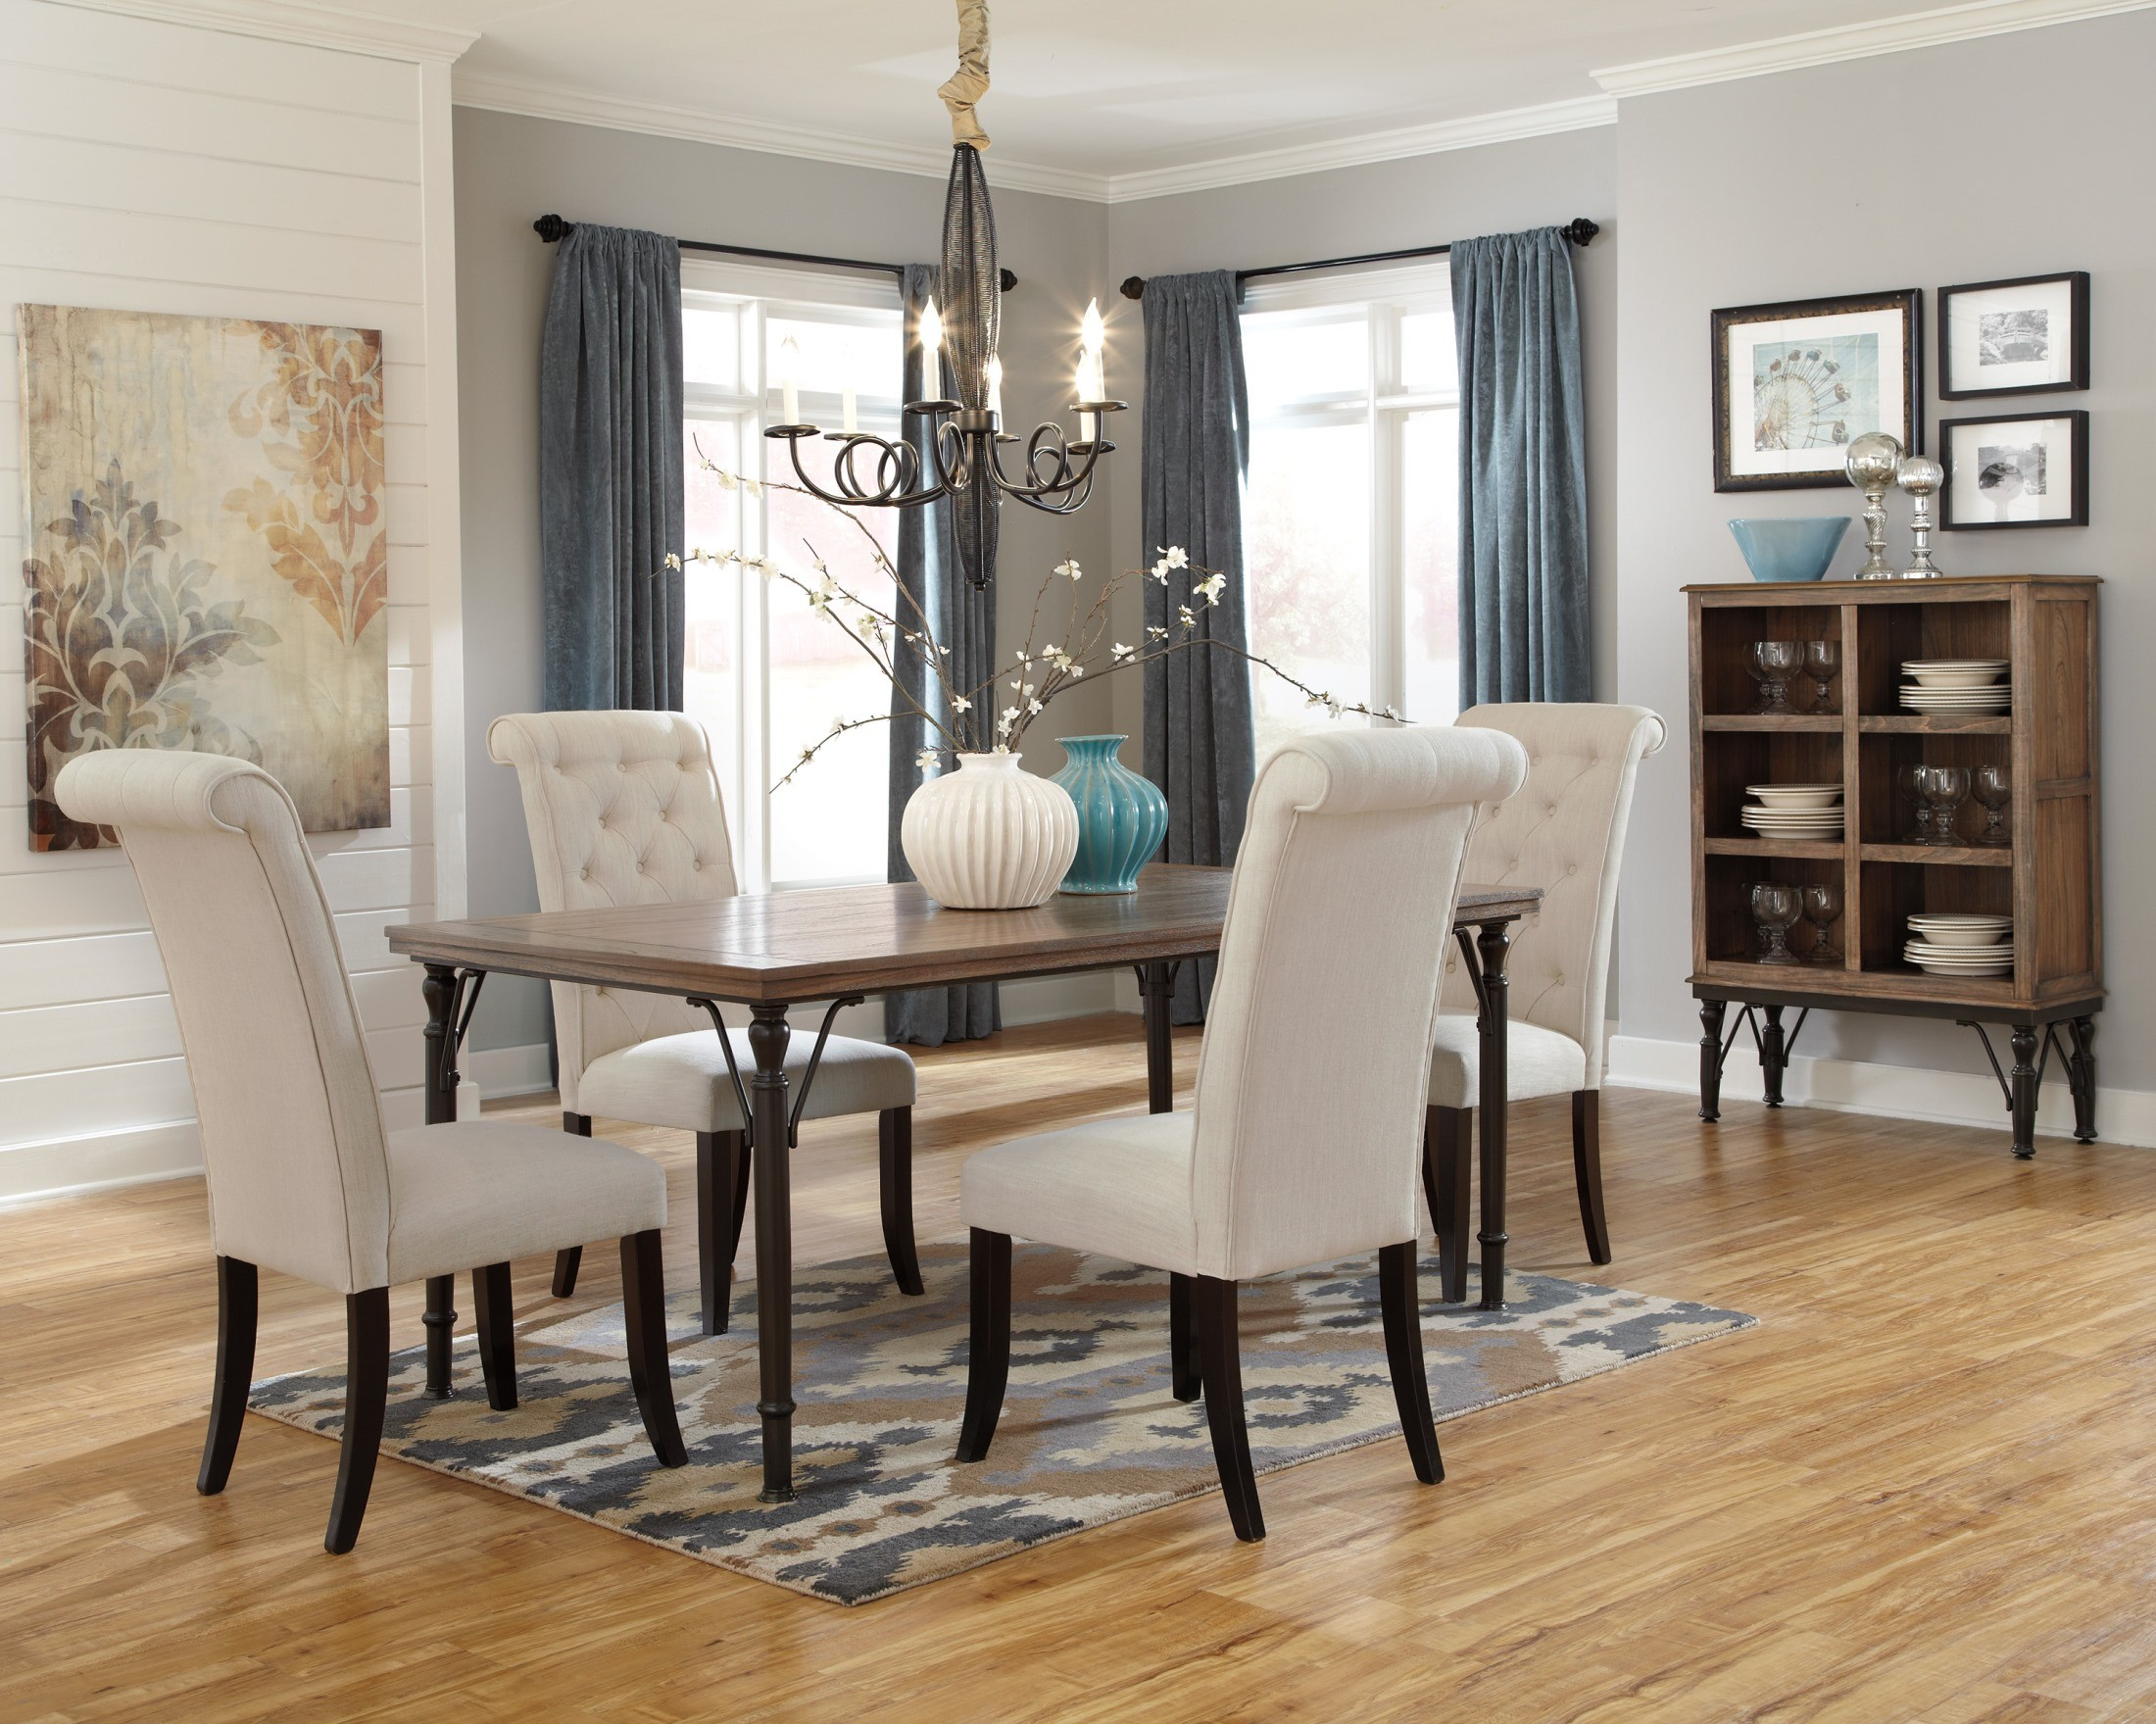 Tripton Dining Upholstered Side Chair Set of 2 from Ashley  : d530 25 014 76 from colemanfurniture.com size 2200 x 1759 jpeg 749kB